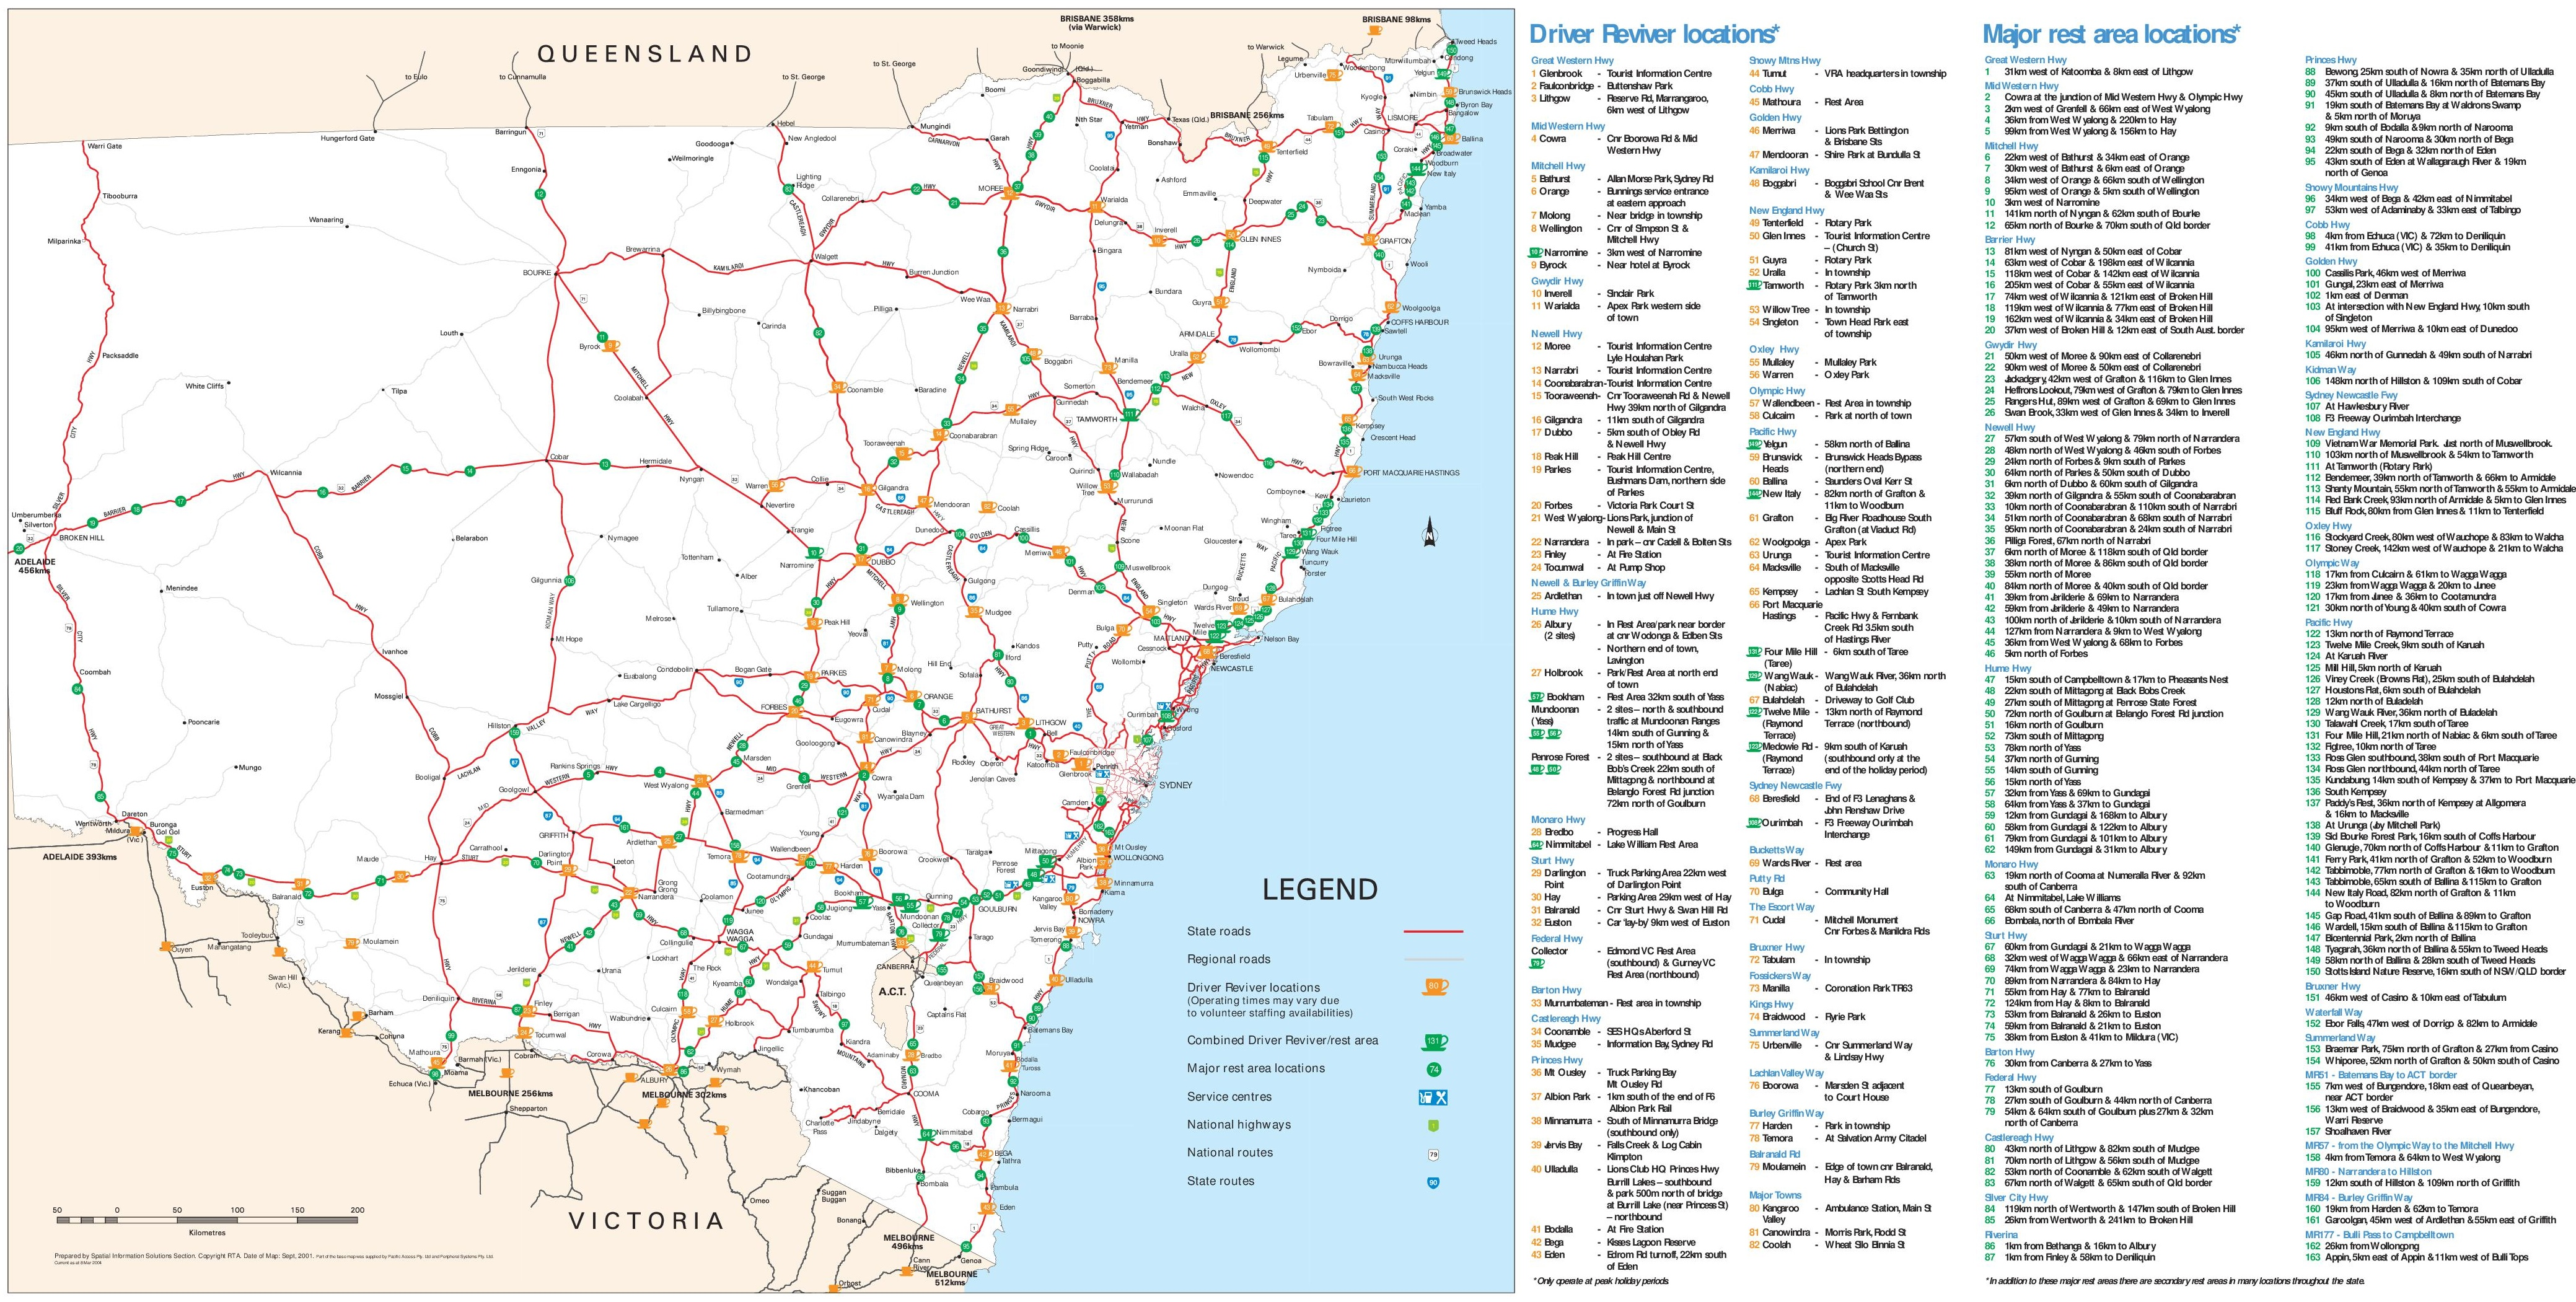 new south wales rest area map